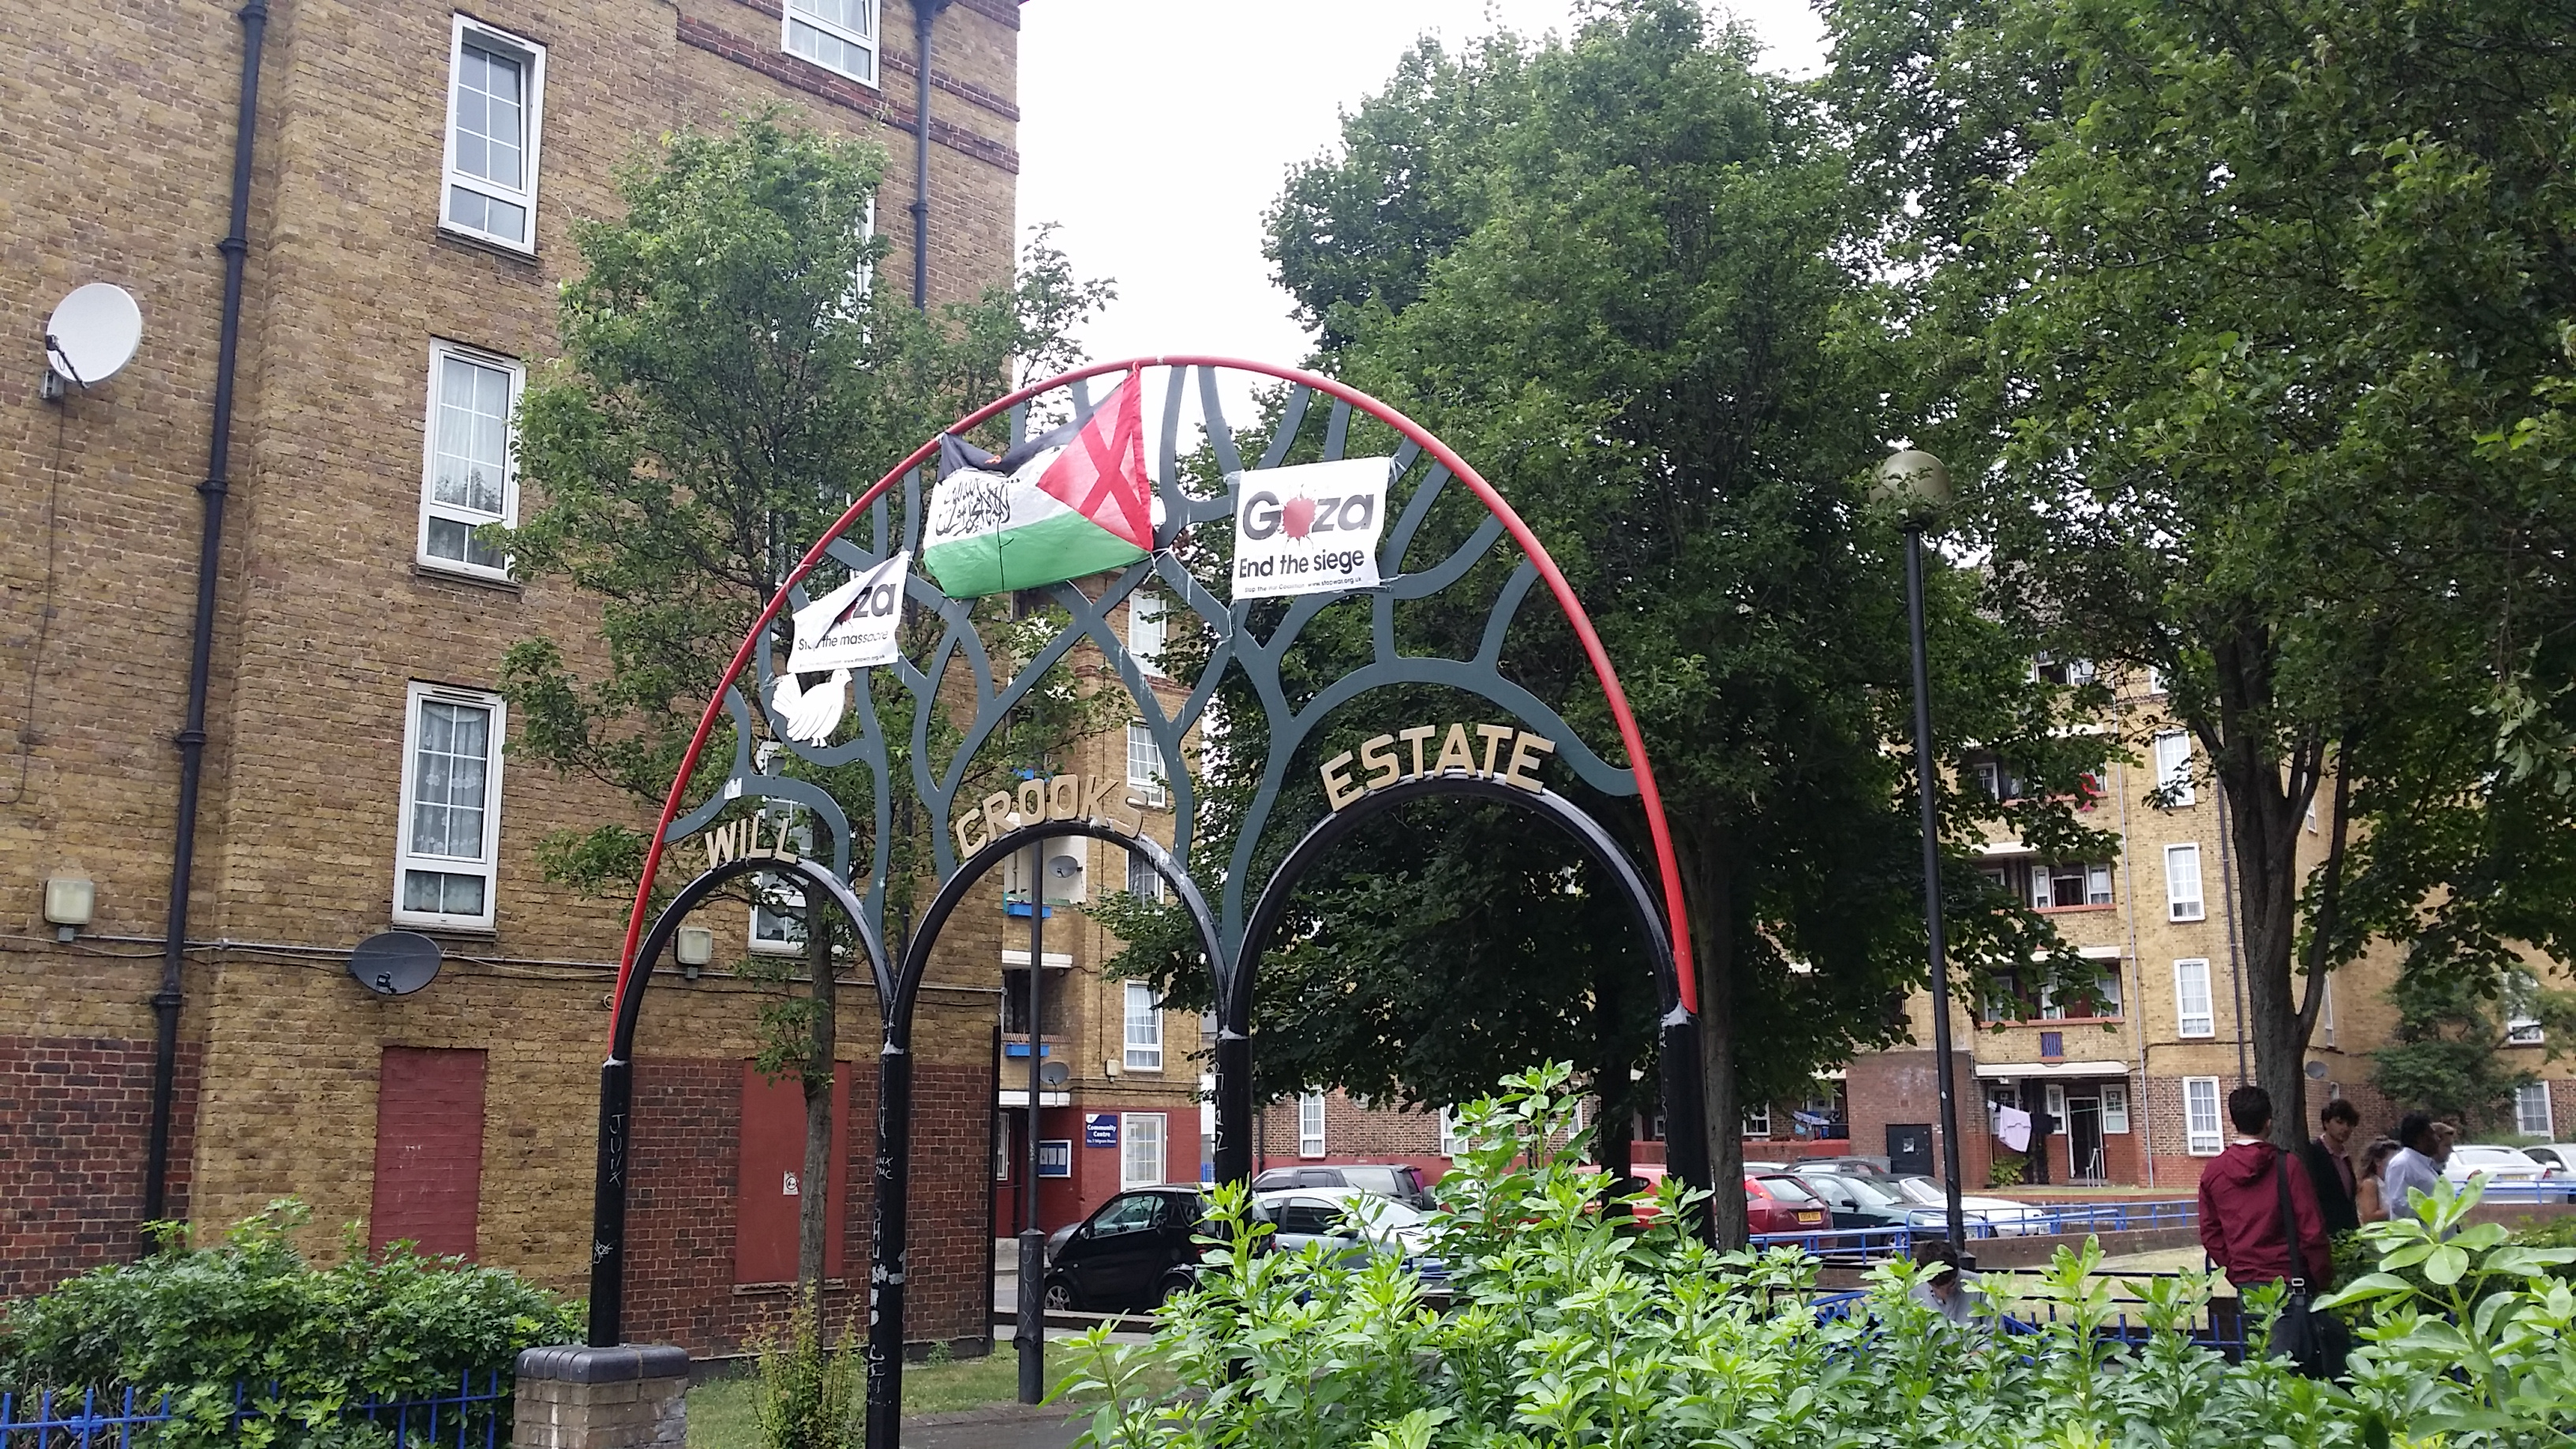 REPORT: 'ISIS Flag' Flying on London Council Estate, Breitbart London Investigates